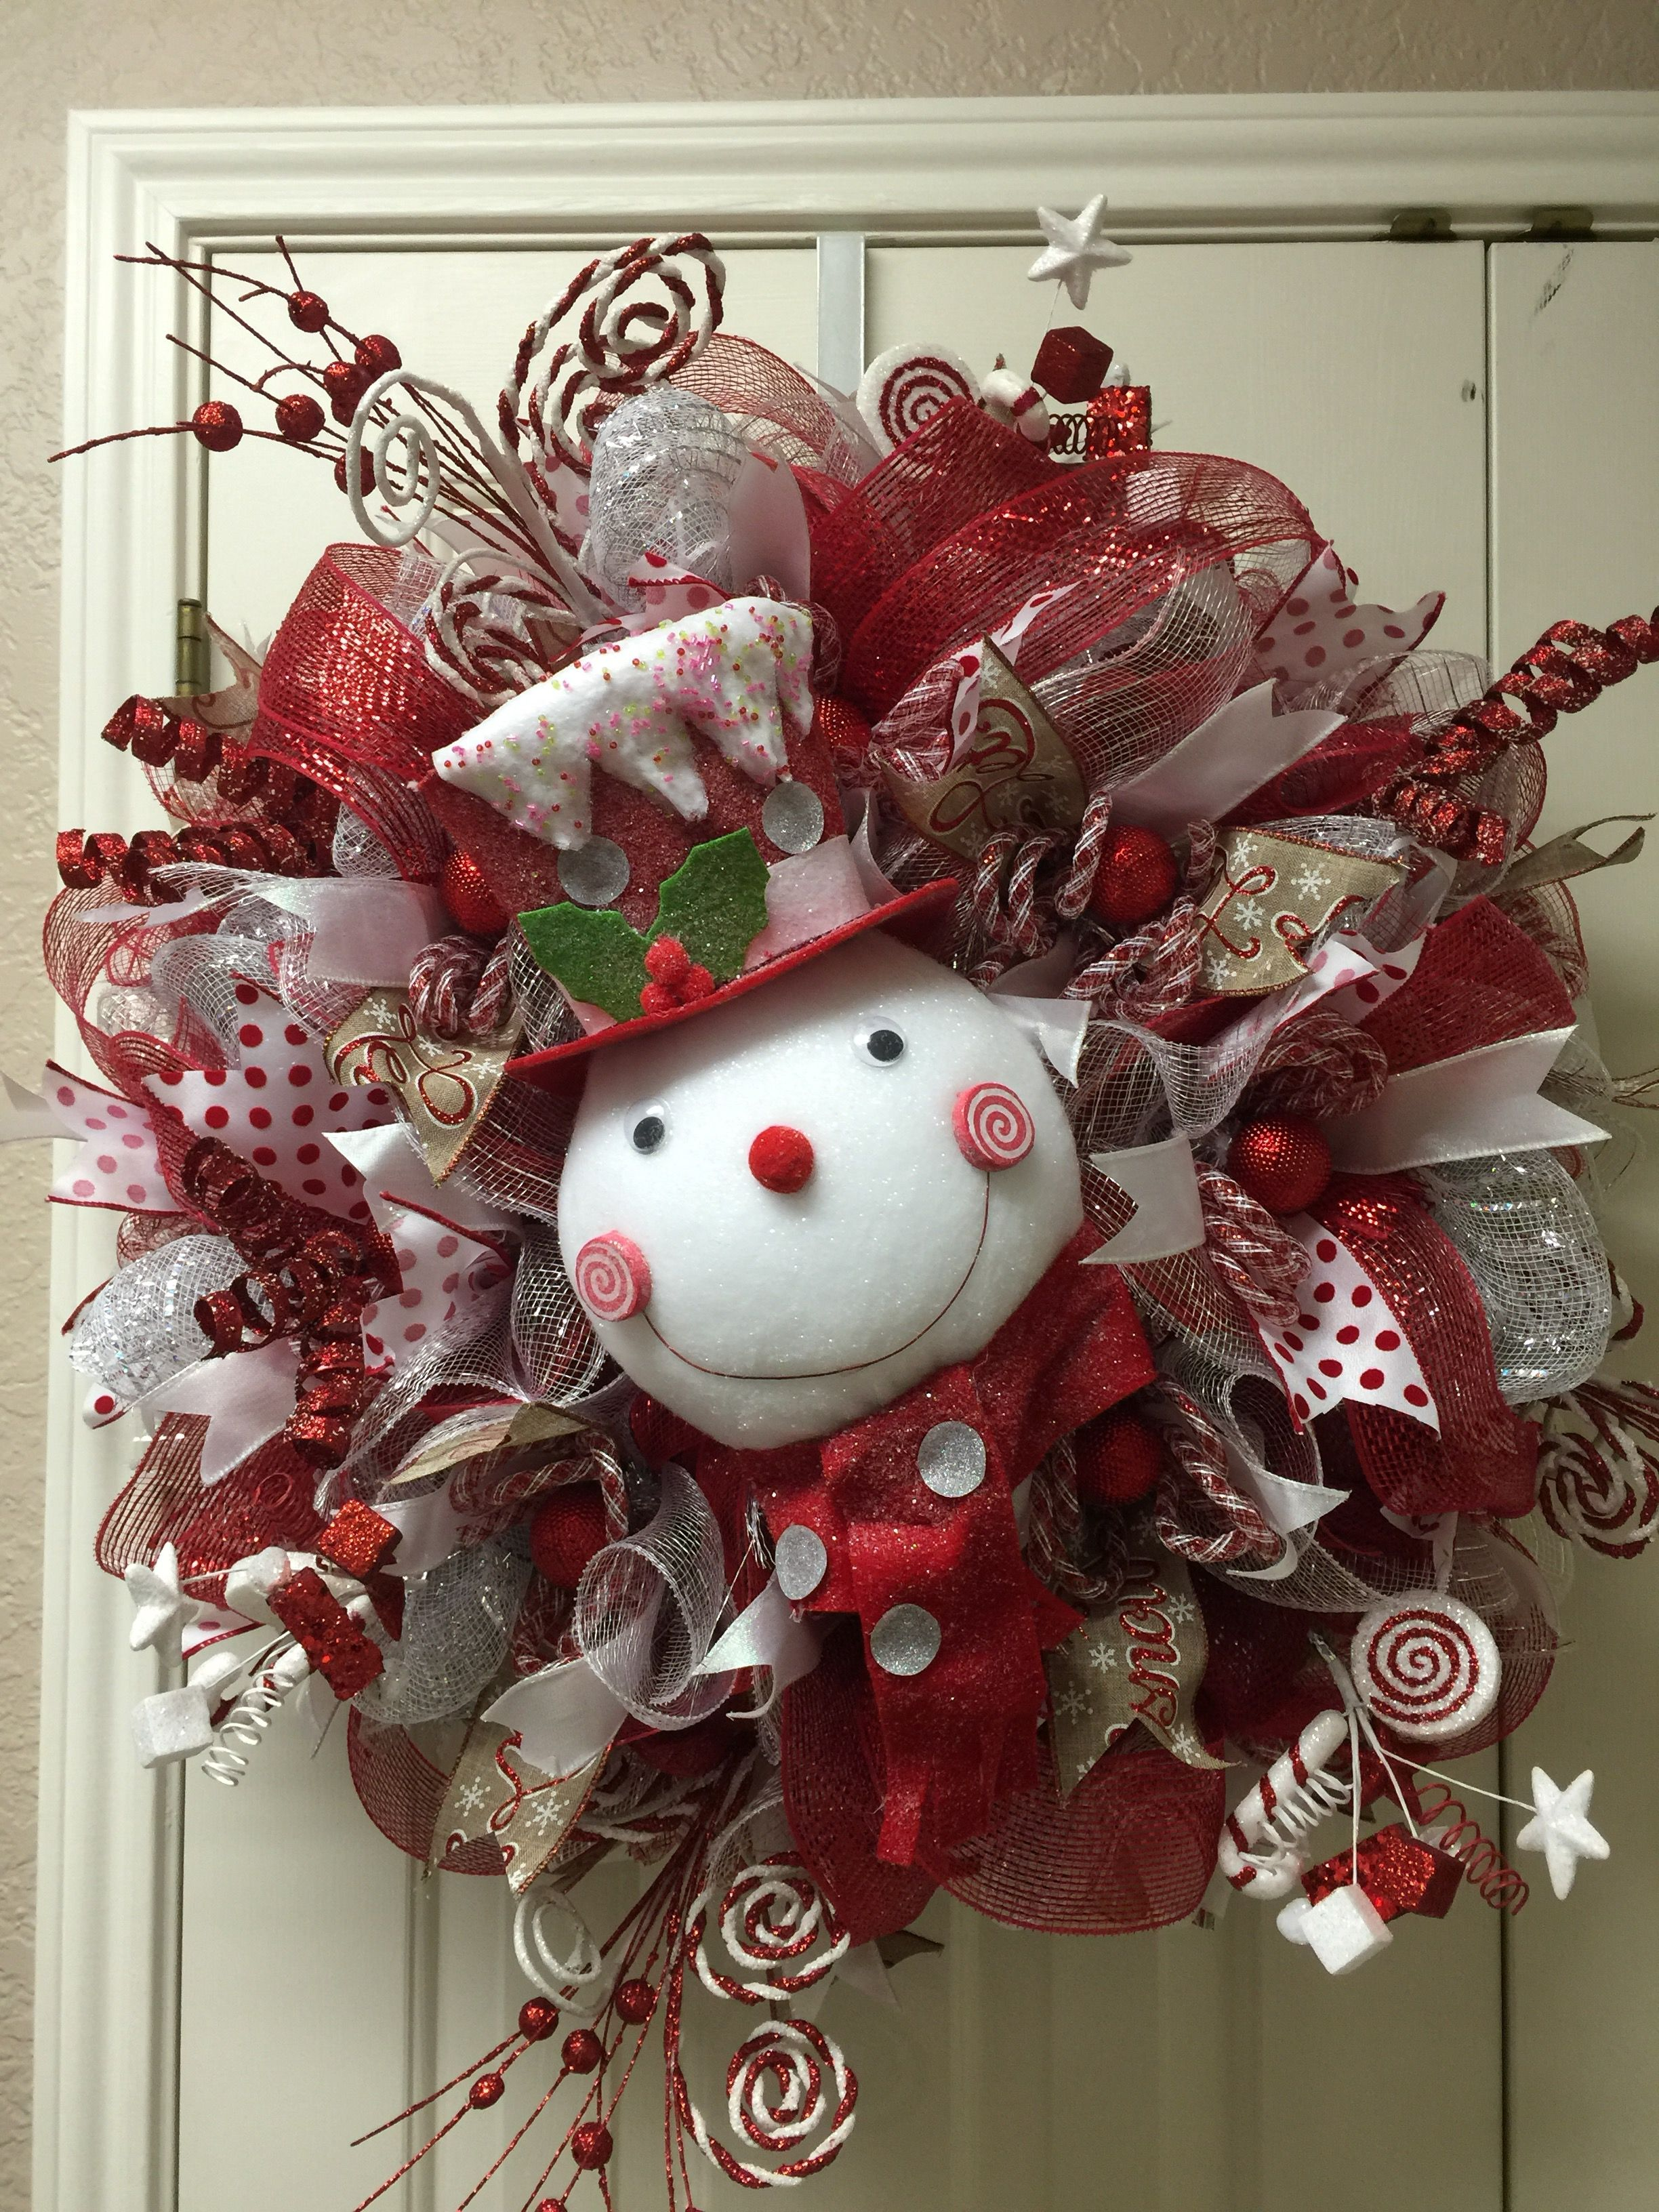 Red/White Snowman deco mesh wreath by Twentycoats Wreath